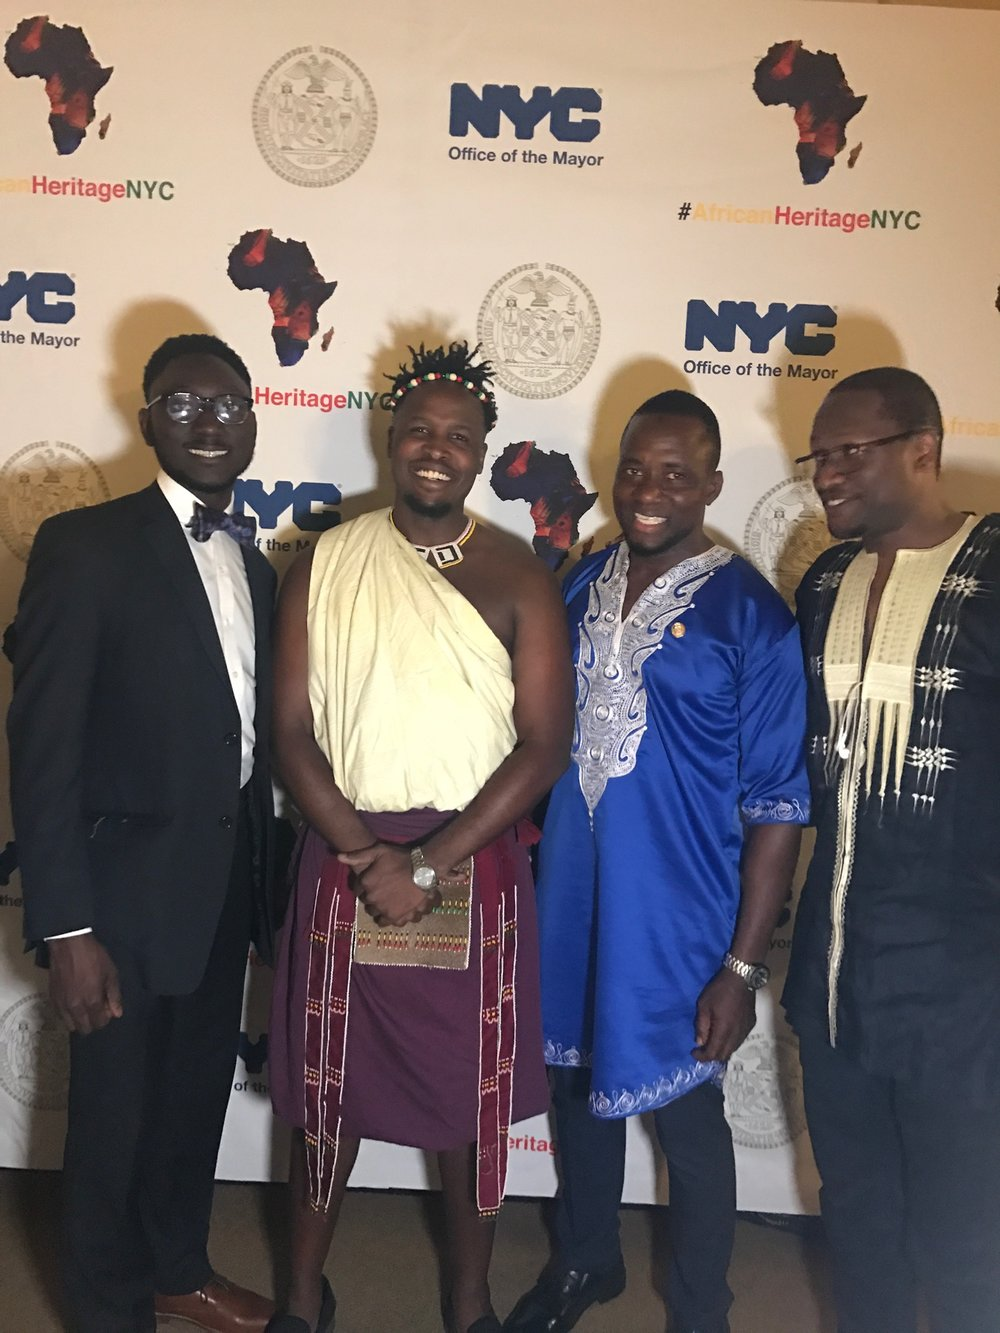 Me representing the Kingdom of eSwatini at an African Heritage reception at the NYC Mayor's Office.